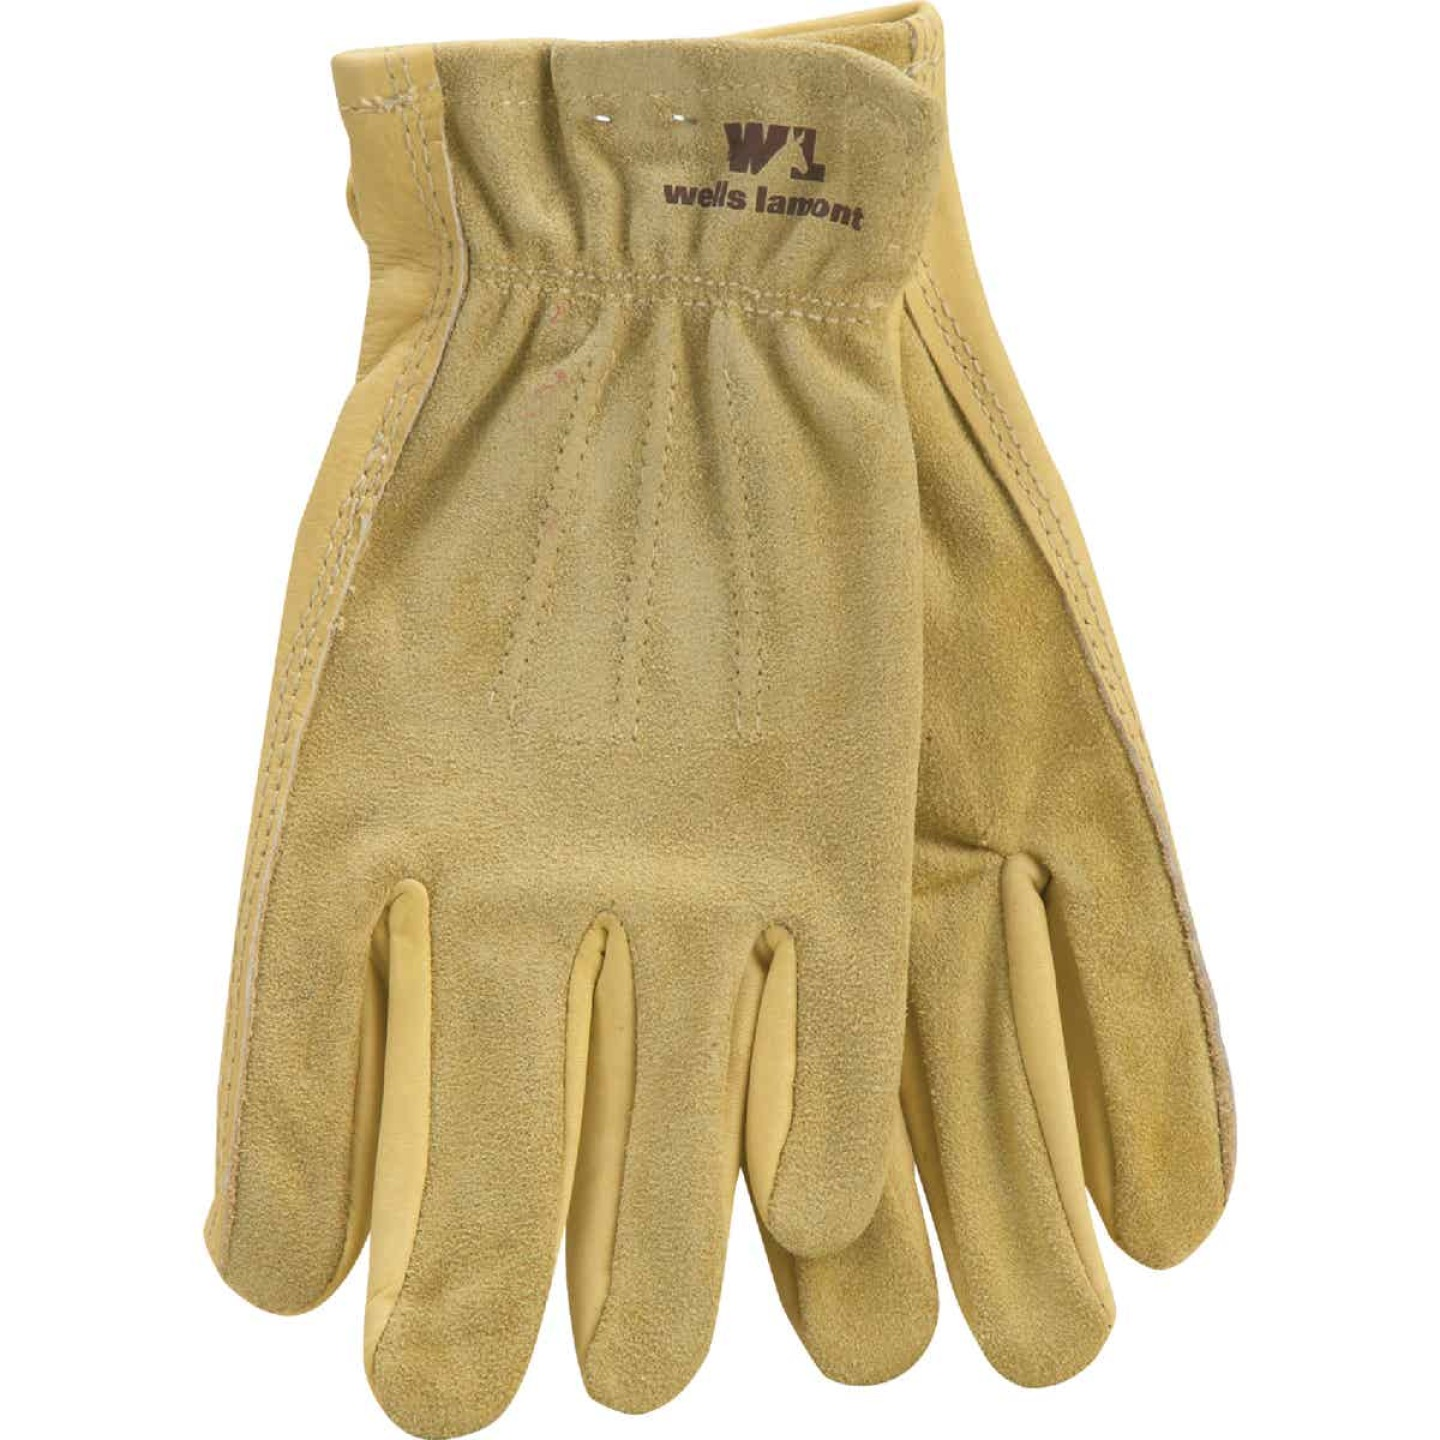 Wells Lamont Women's Medium Grain Cowhide Leather Work Glove Image 1